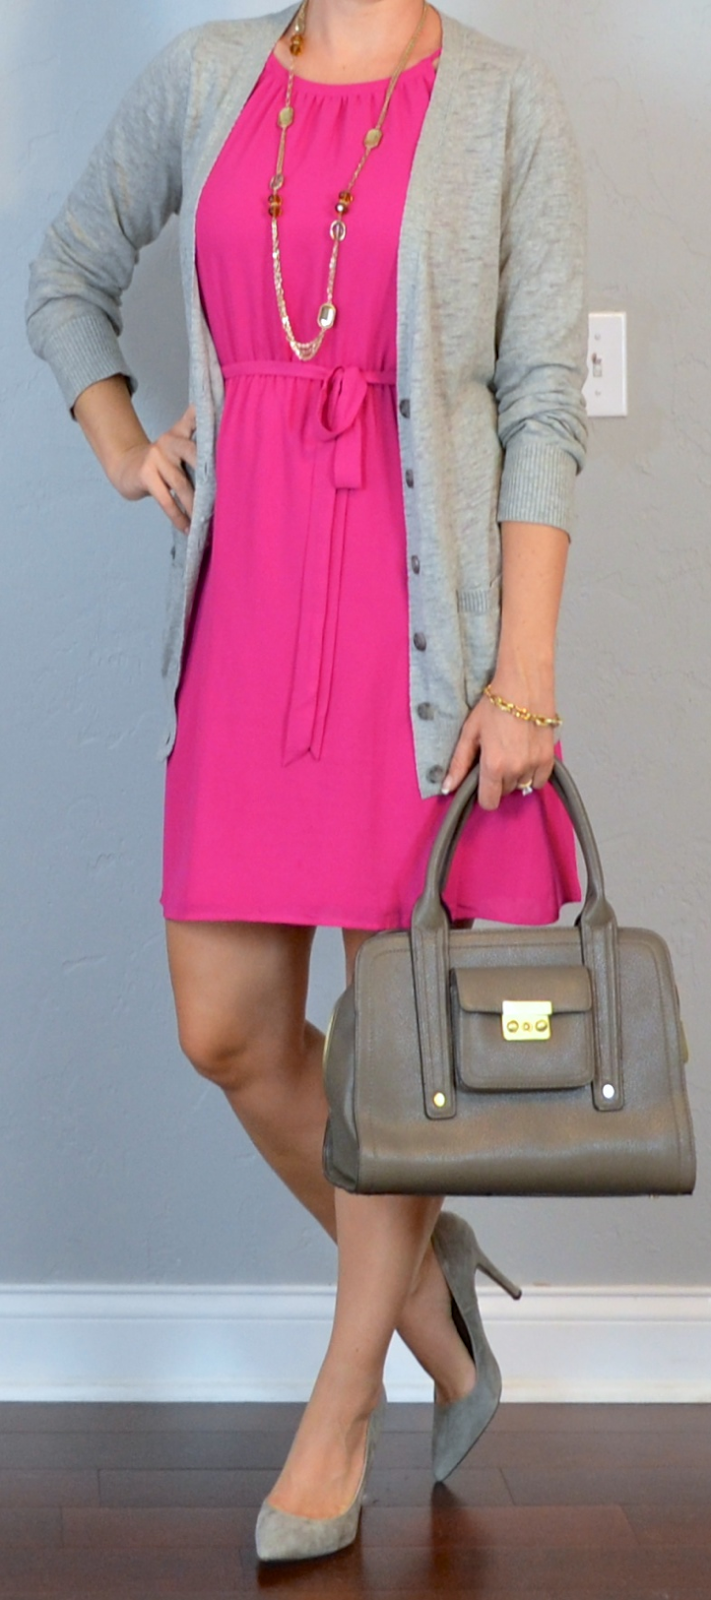 Outfit post hot pink dress grey boyfriend cardigan grey pointed pumps